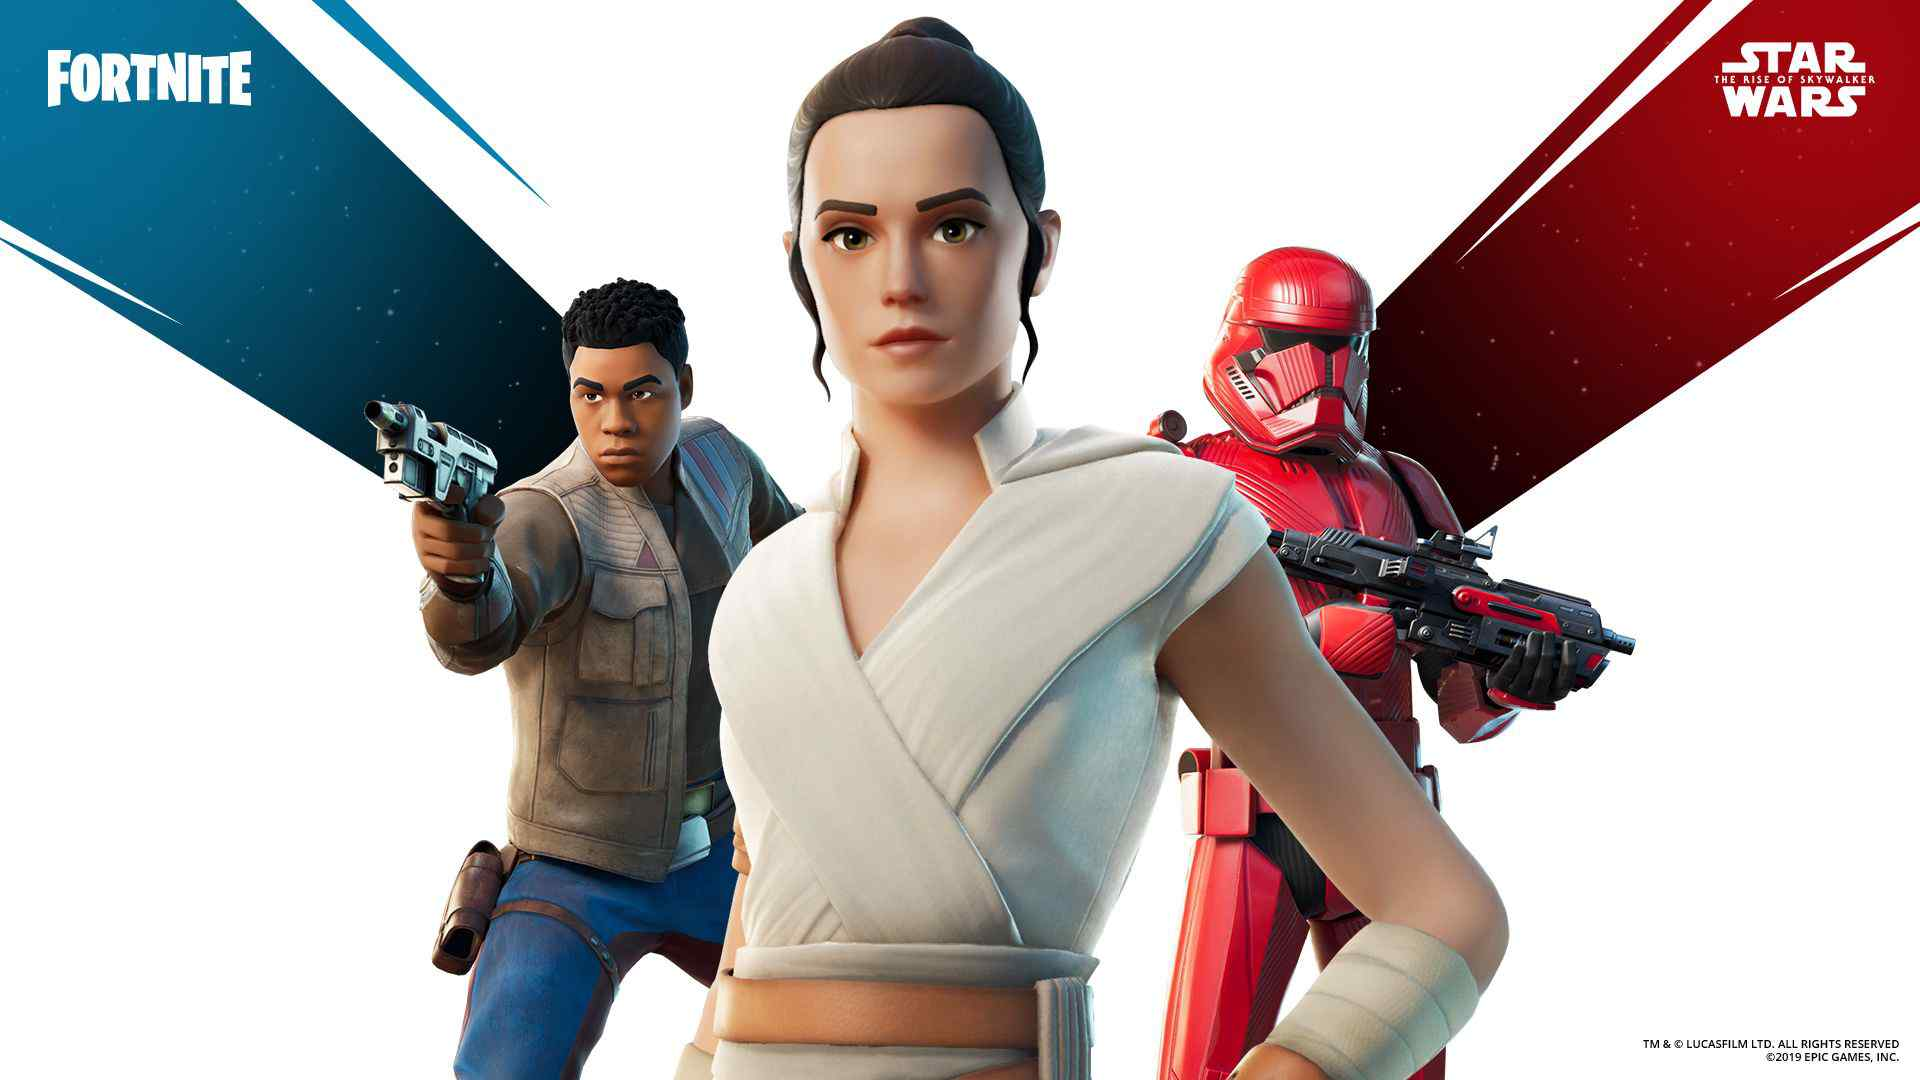 fortnite star wars event - photo #14